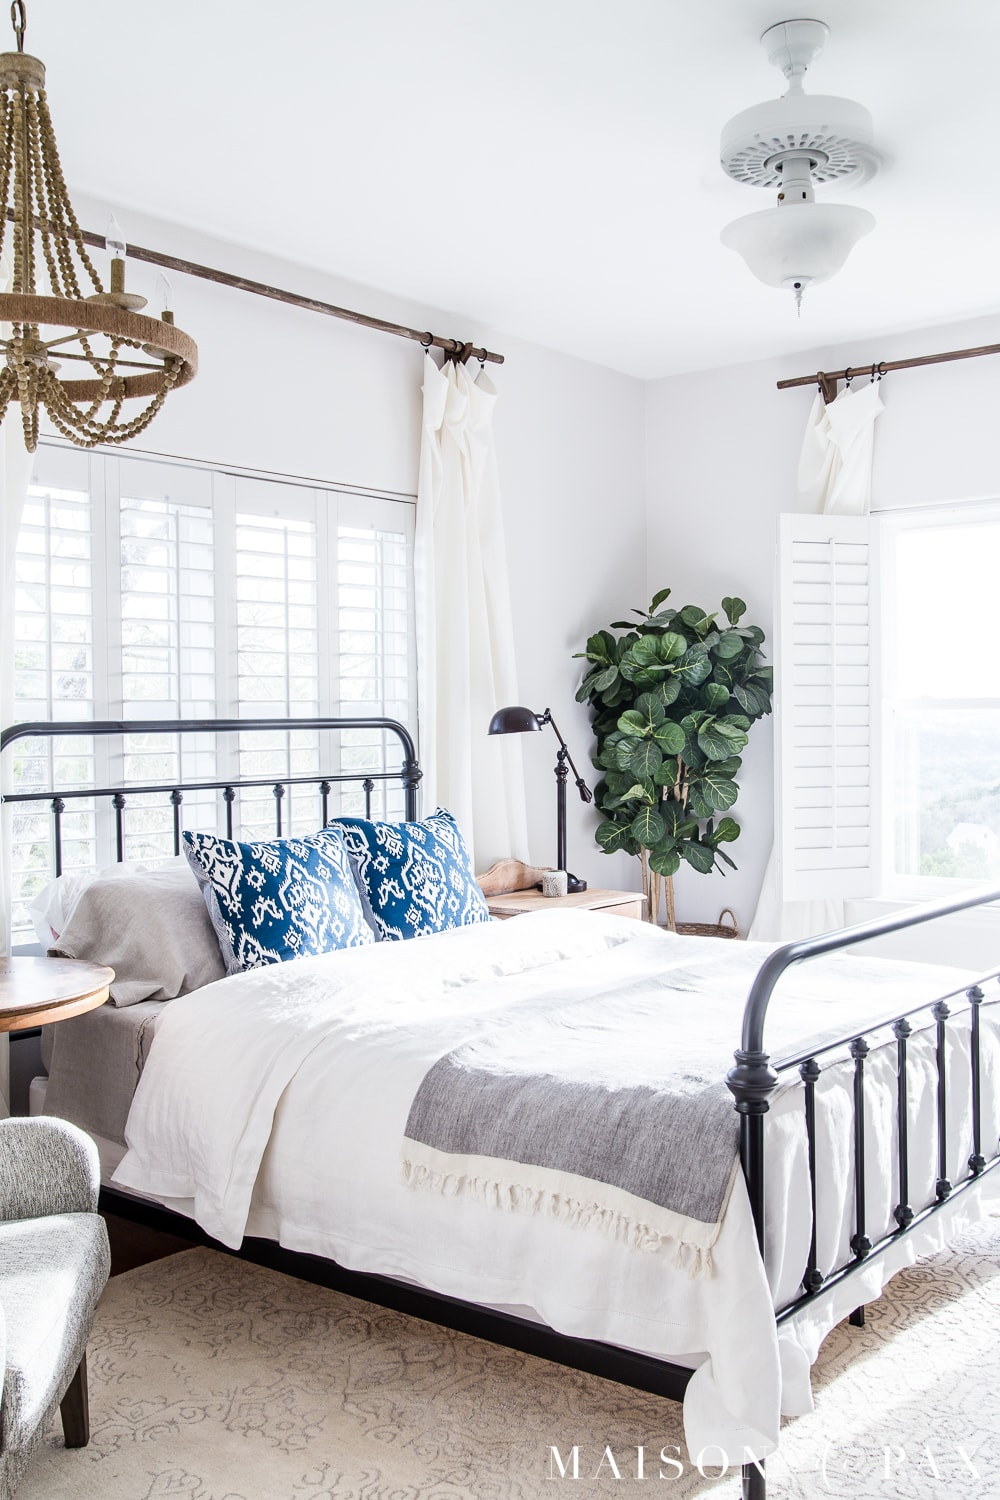 Tip #1: Start With A Base Of White Bedding... Looking To